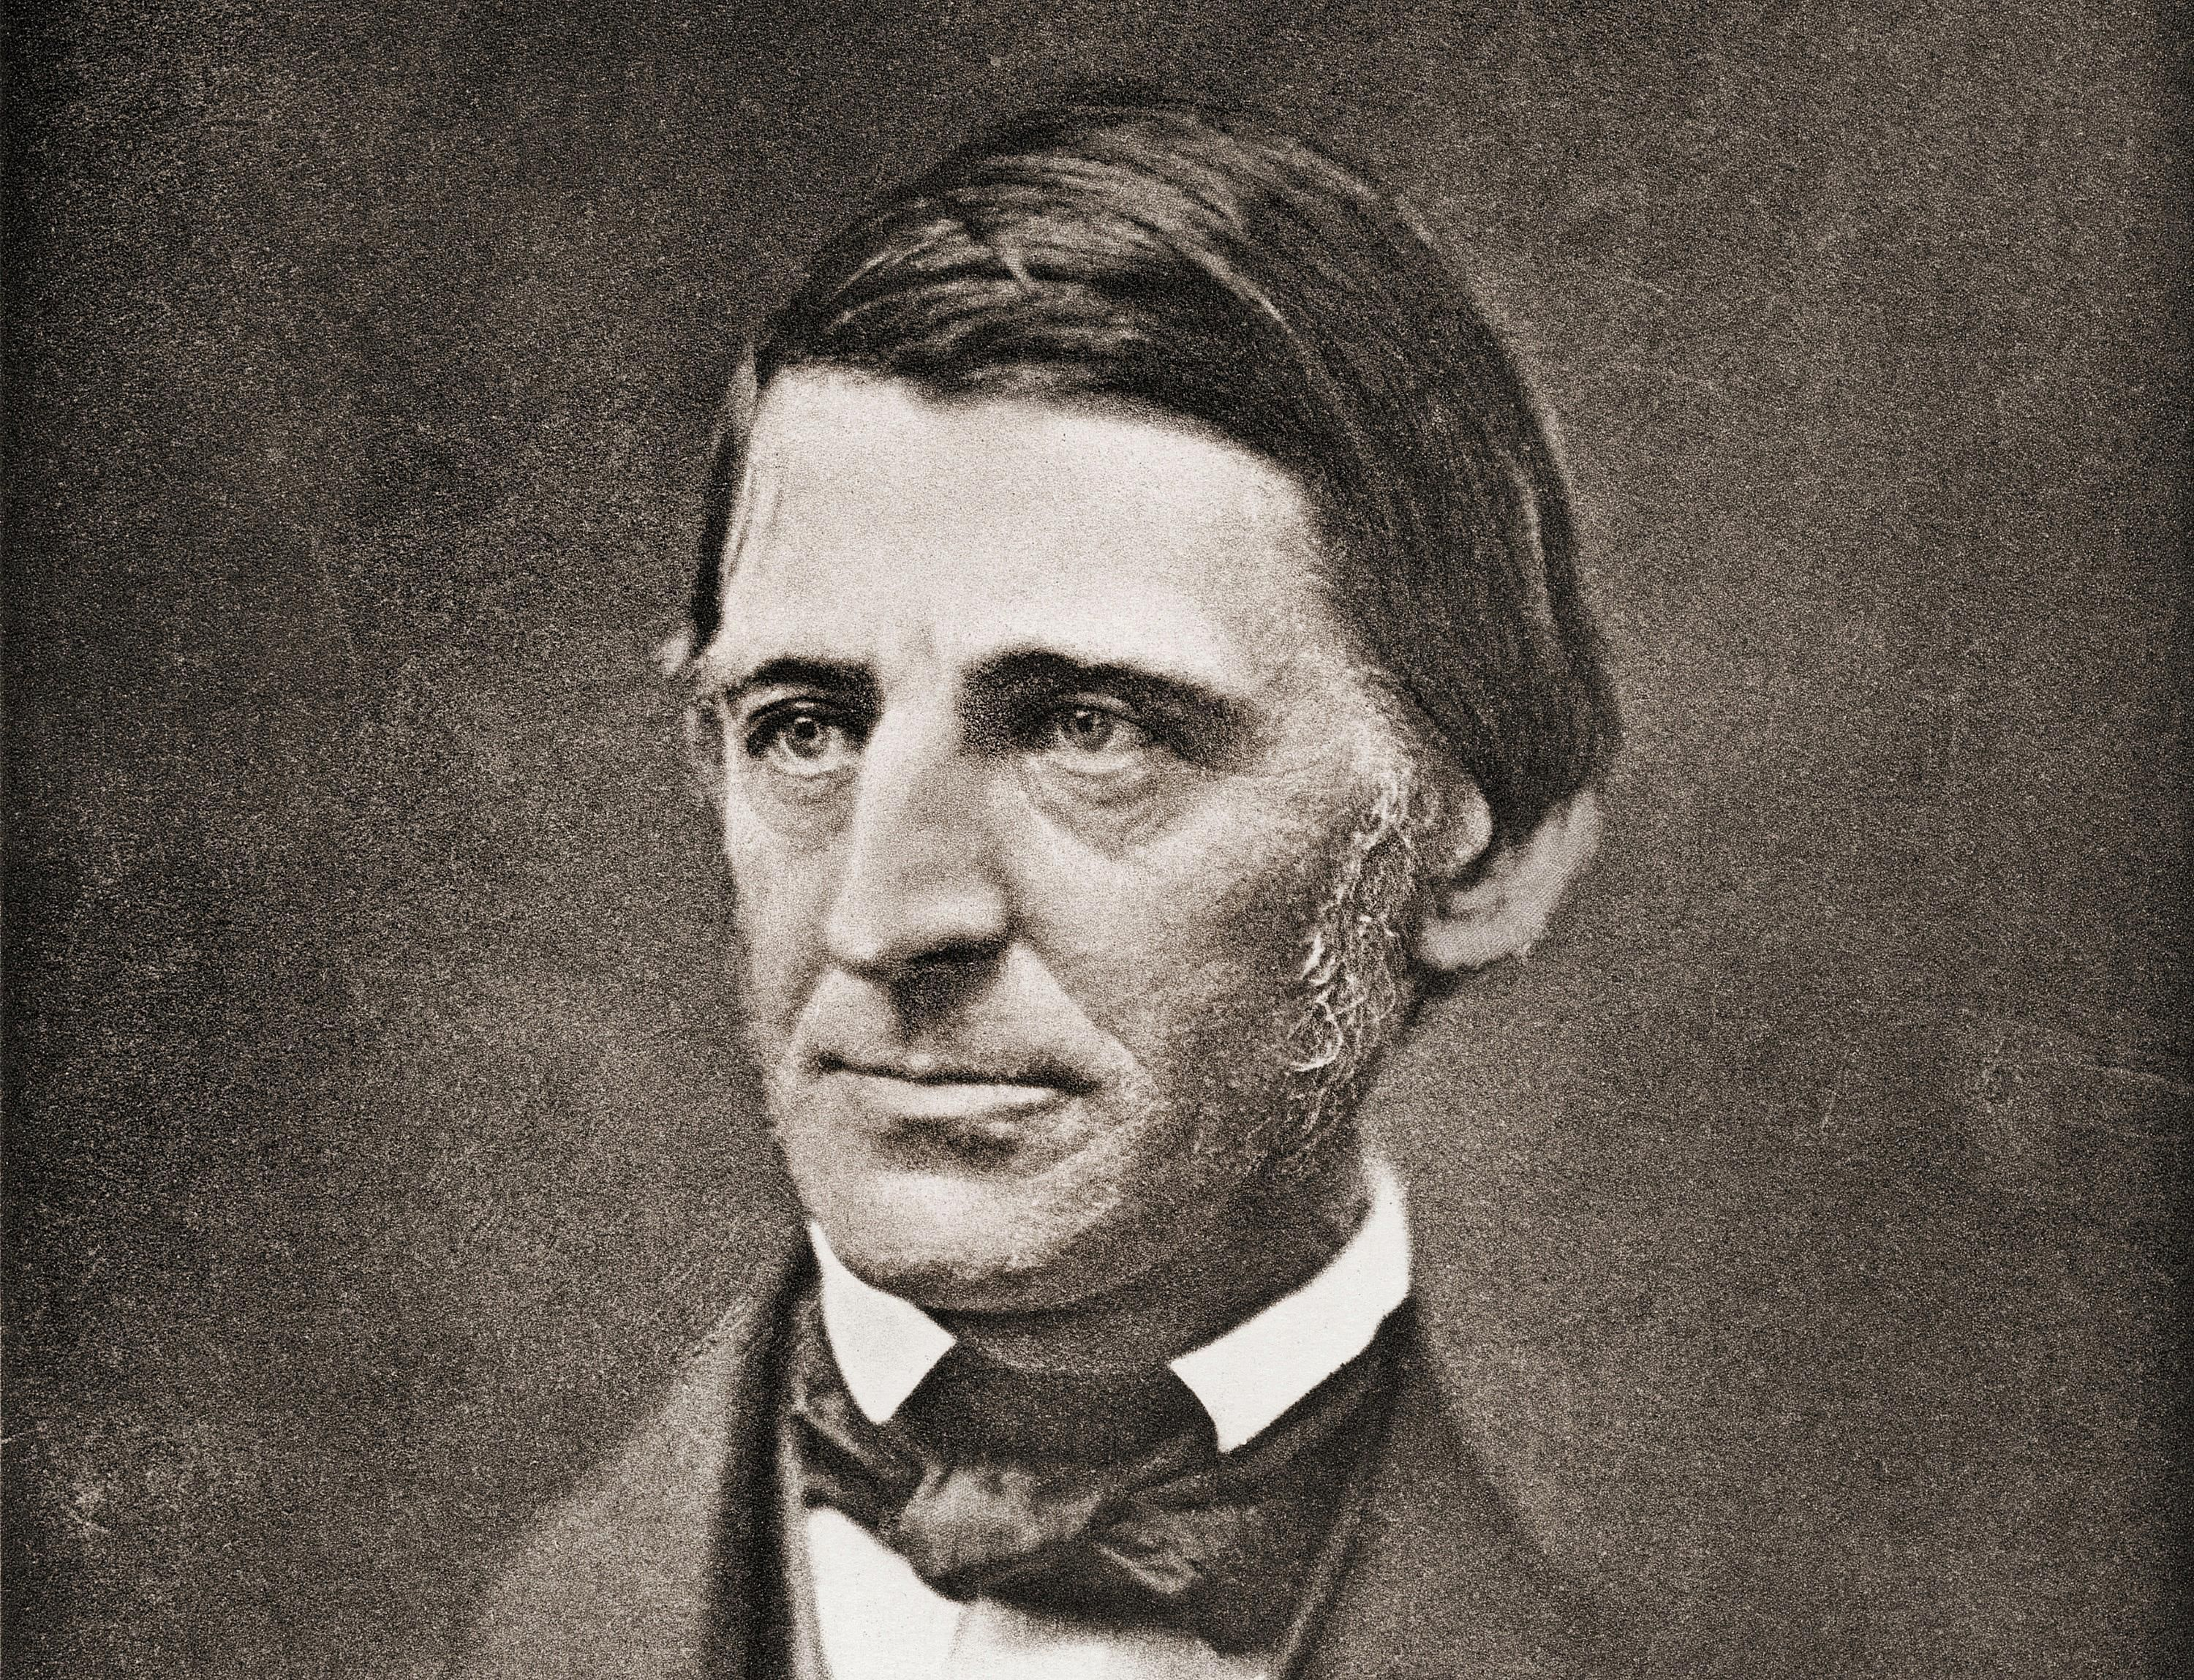 ralph waldo emerson and the transcendentalist Ralph waldo emerson - poet - american poet, essayist, and philosopher ralph waldo emerson was born in 1803 in boston.